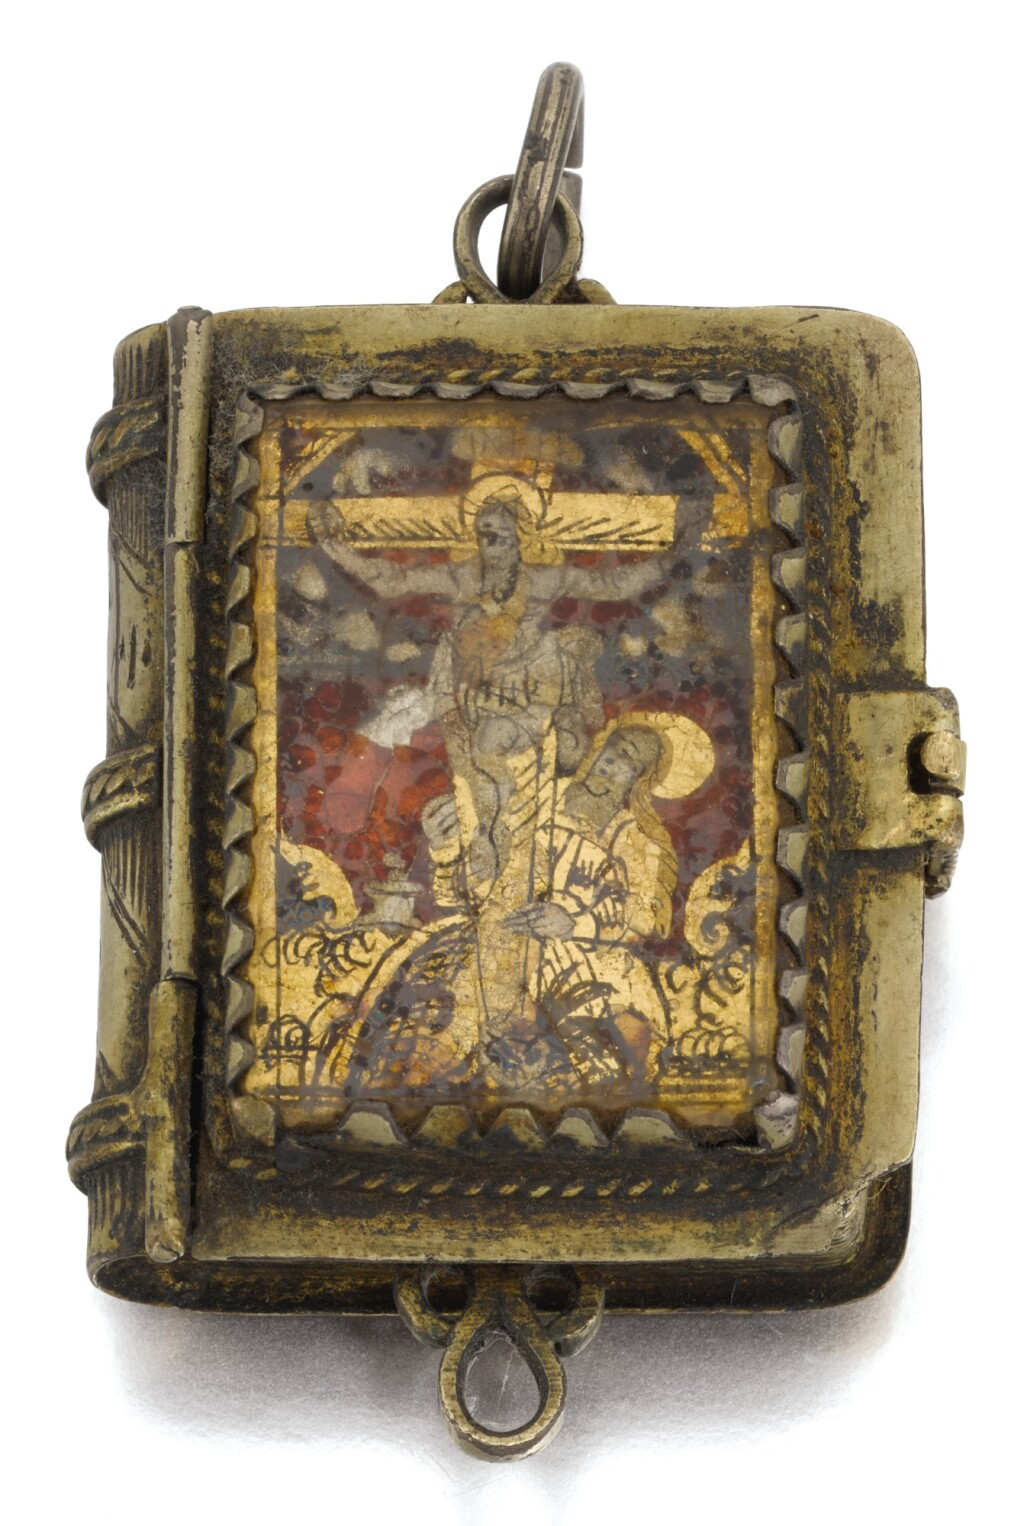 SPANISH OR ITALIAN, 17TH/ EARLY 18TH CENTURY | Miniature Prayer Book pendant with a Saint and the Crucifixion, the interior with two female saints